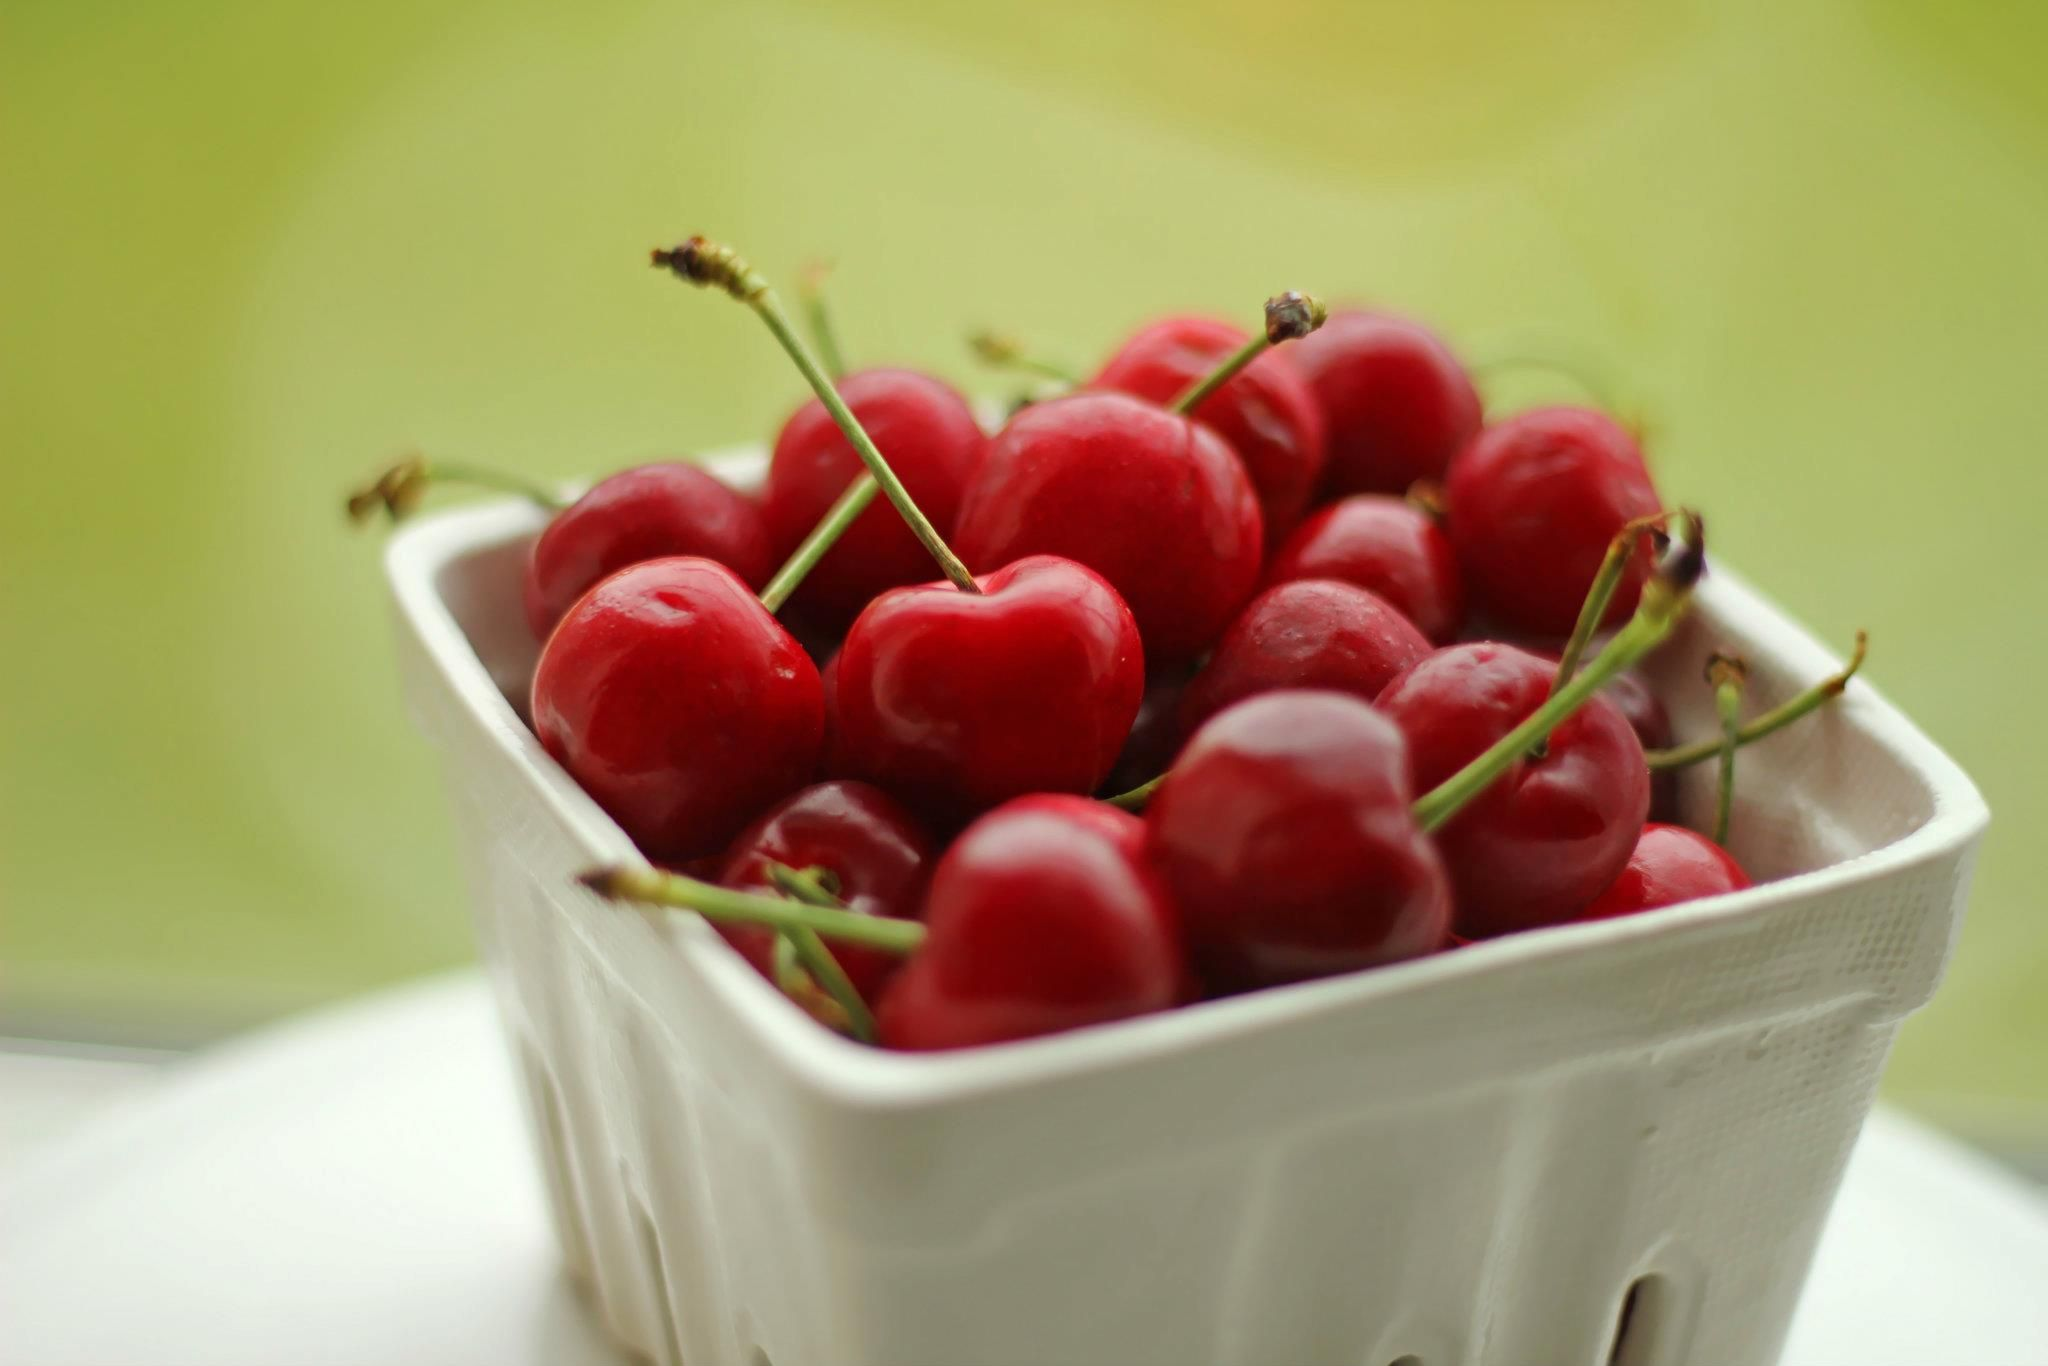 You can figure out how much pesticide is on your food. The